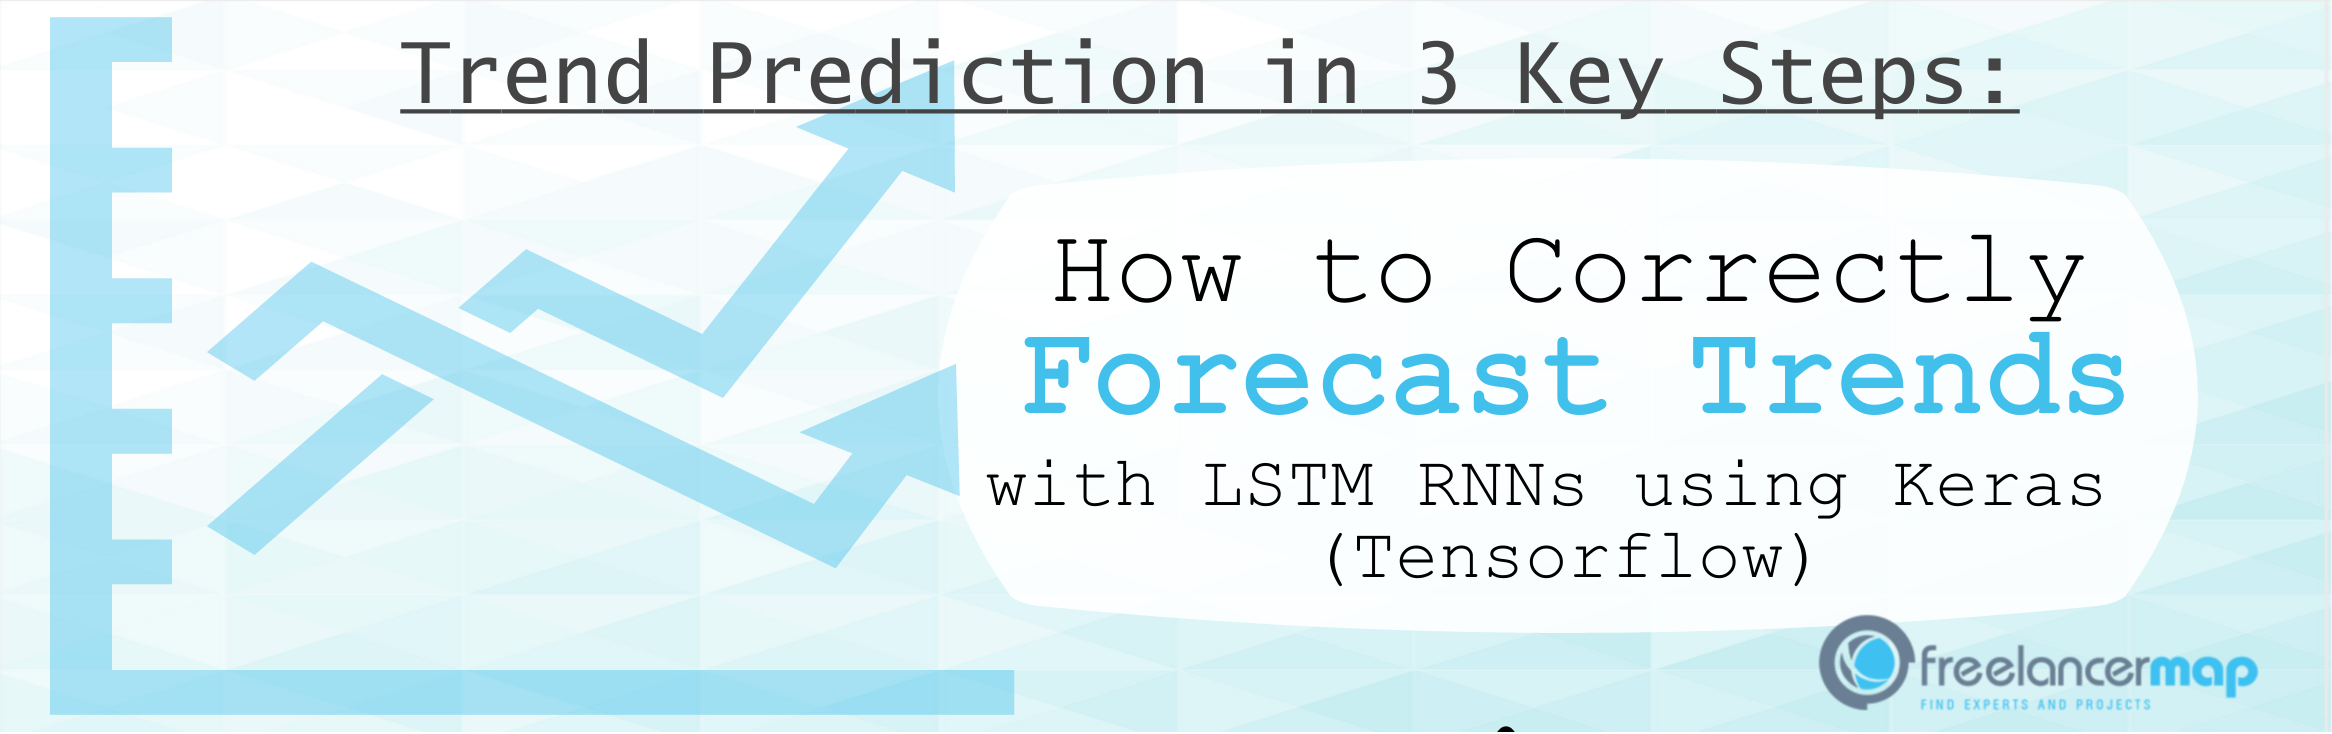 Trend Prediction with LSTM RNNs using Keras (Tensorflow) in 3 Steps